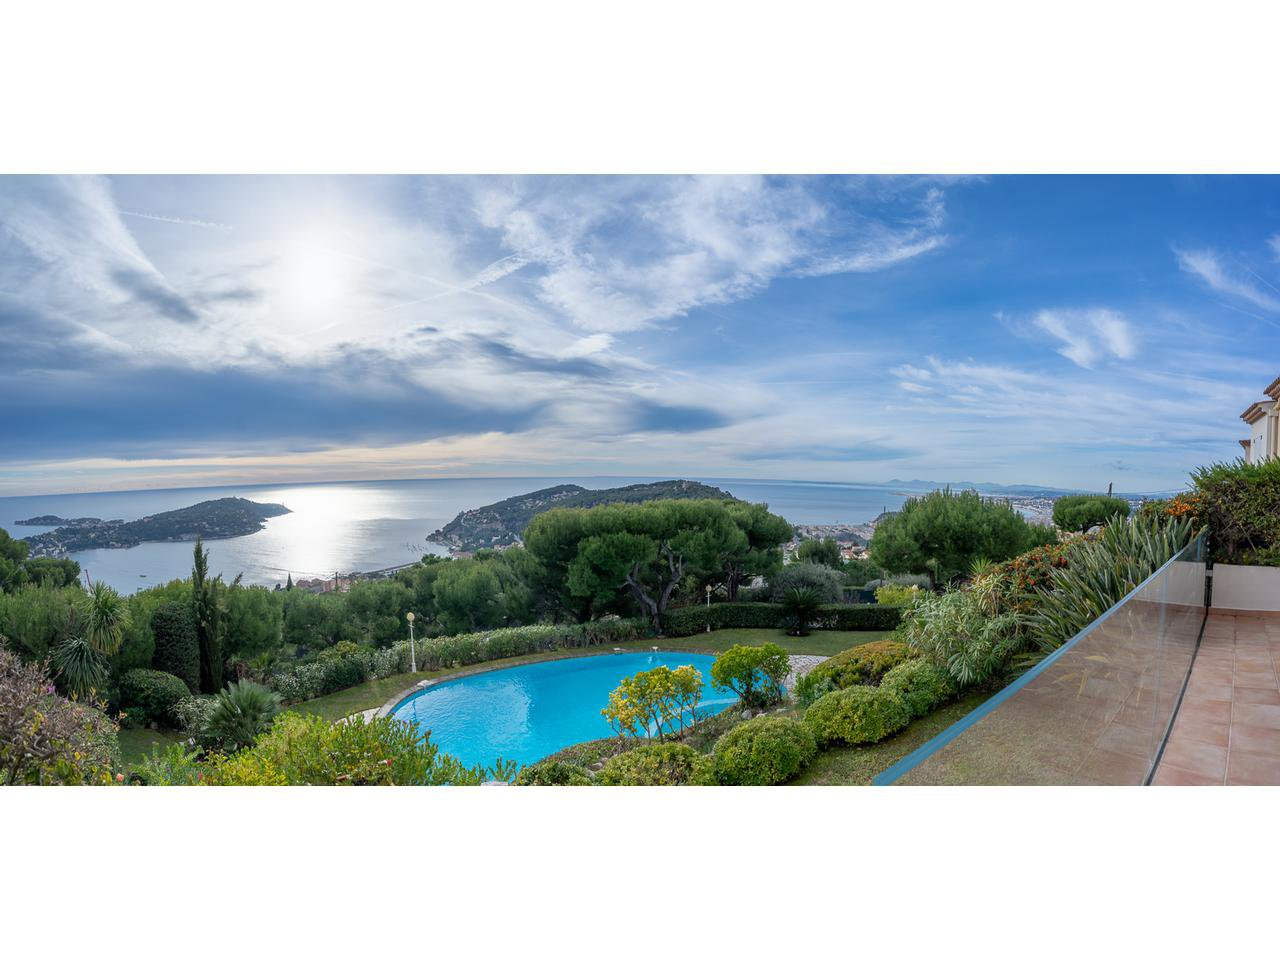 Apartment with views over Villefranche sur Mer